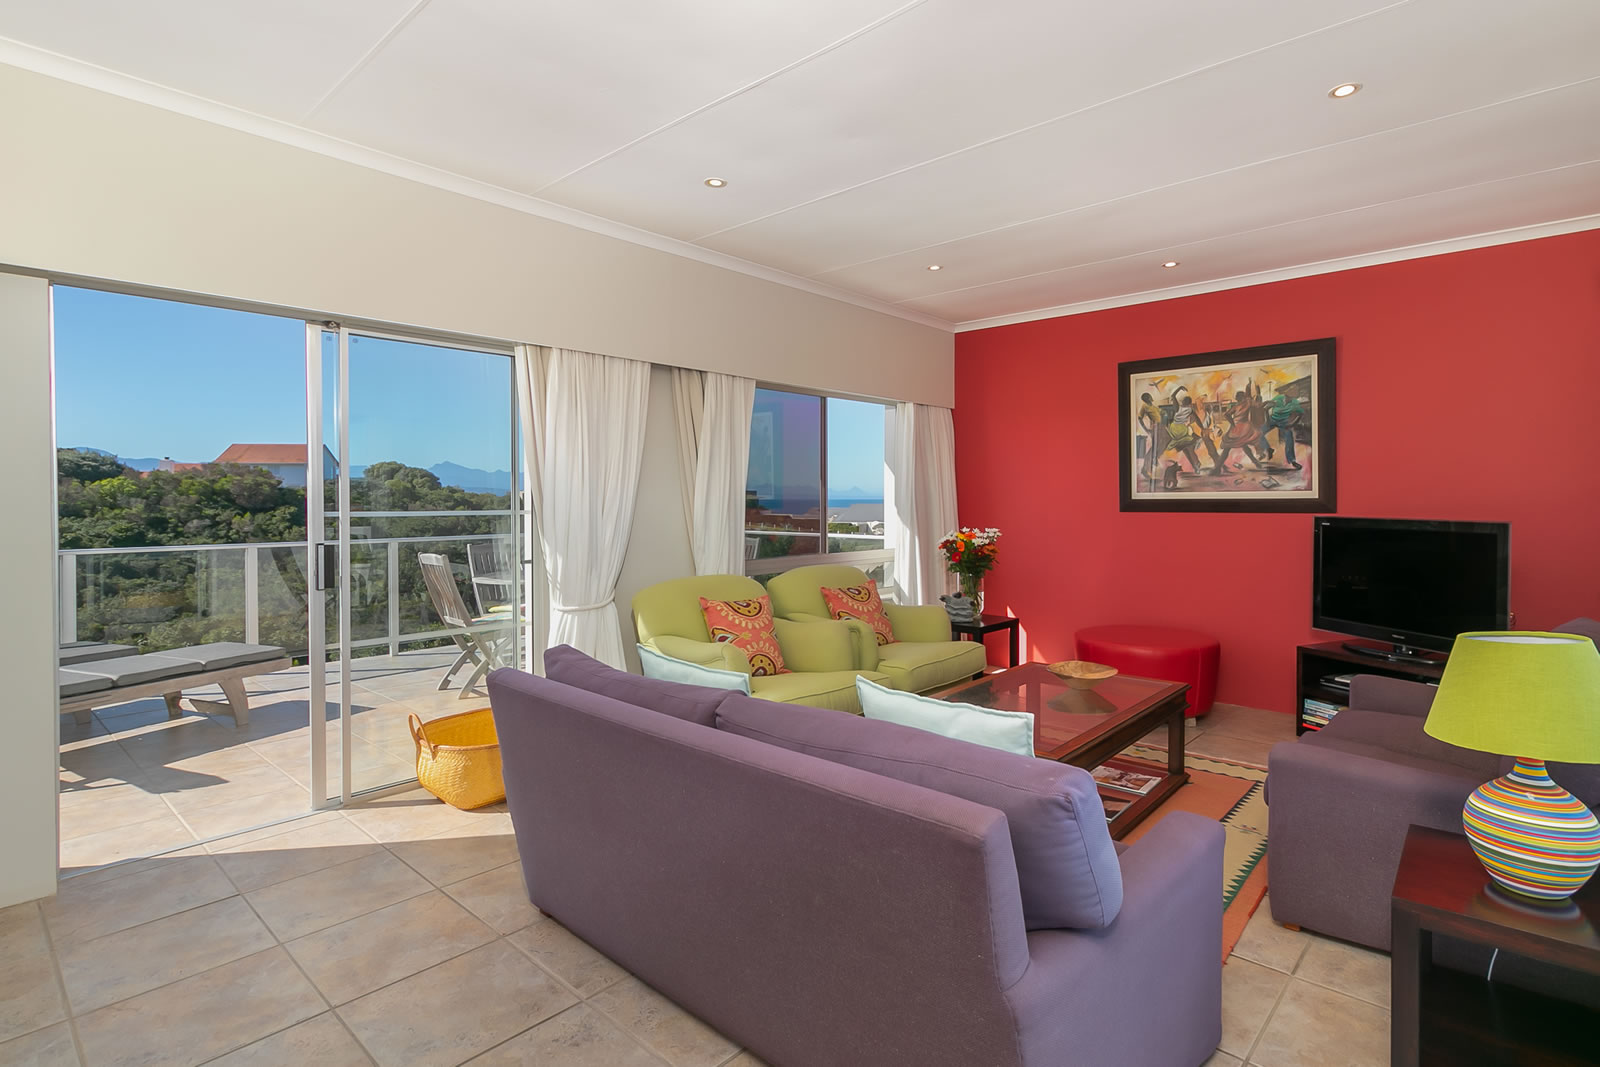 35% off accommodation at Anlin Beach House in Plett this November